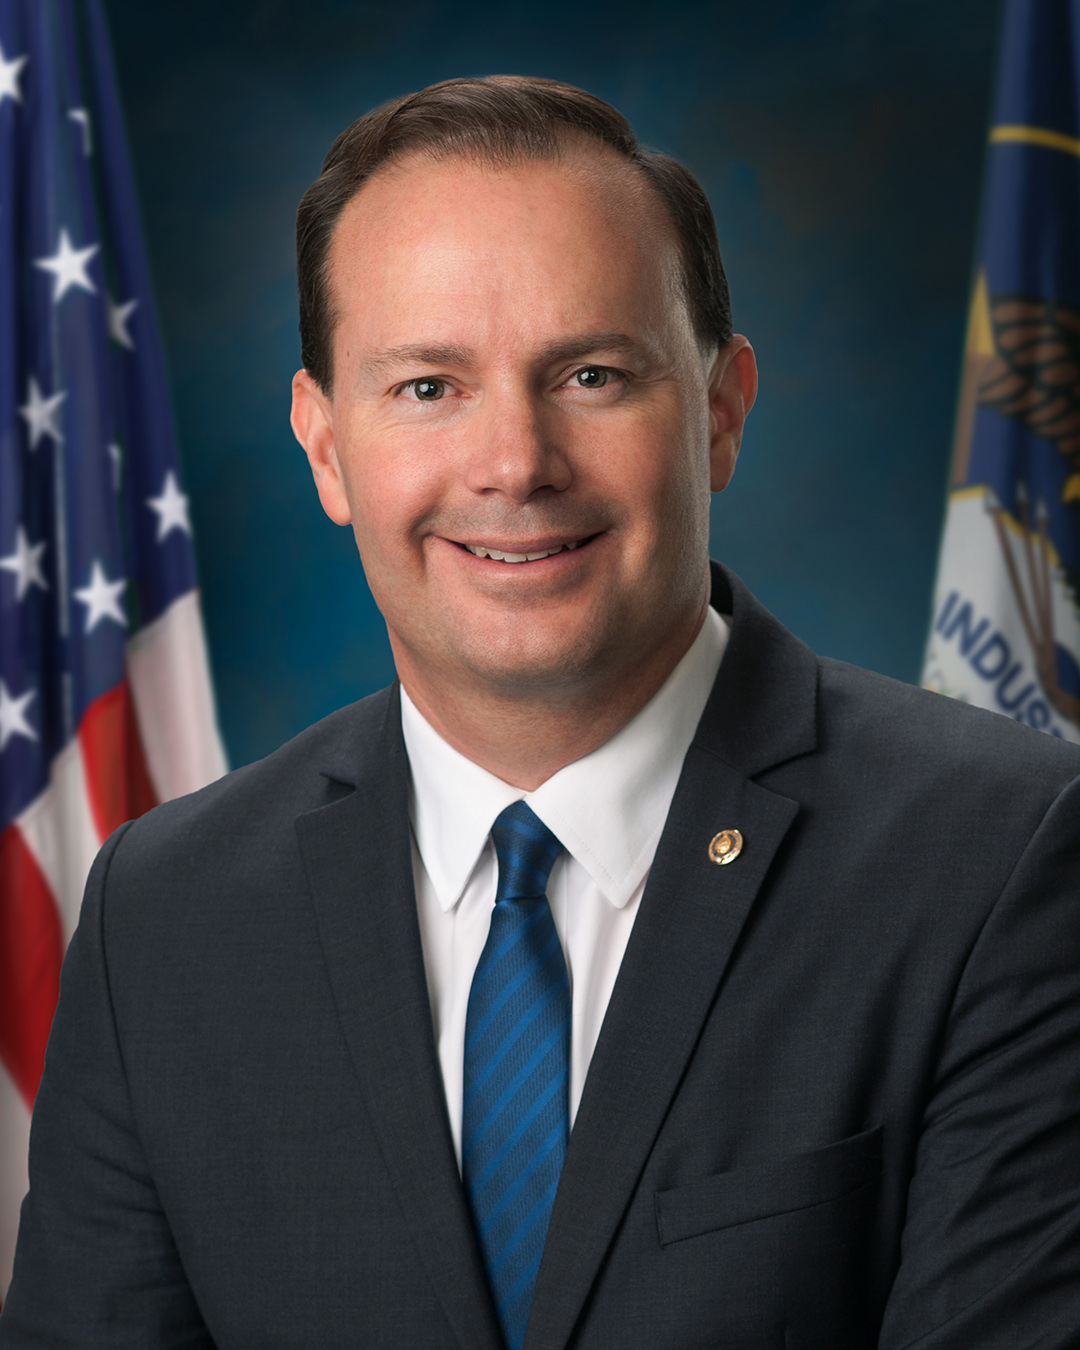 Mike Lee (American politician) - Wikipedia